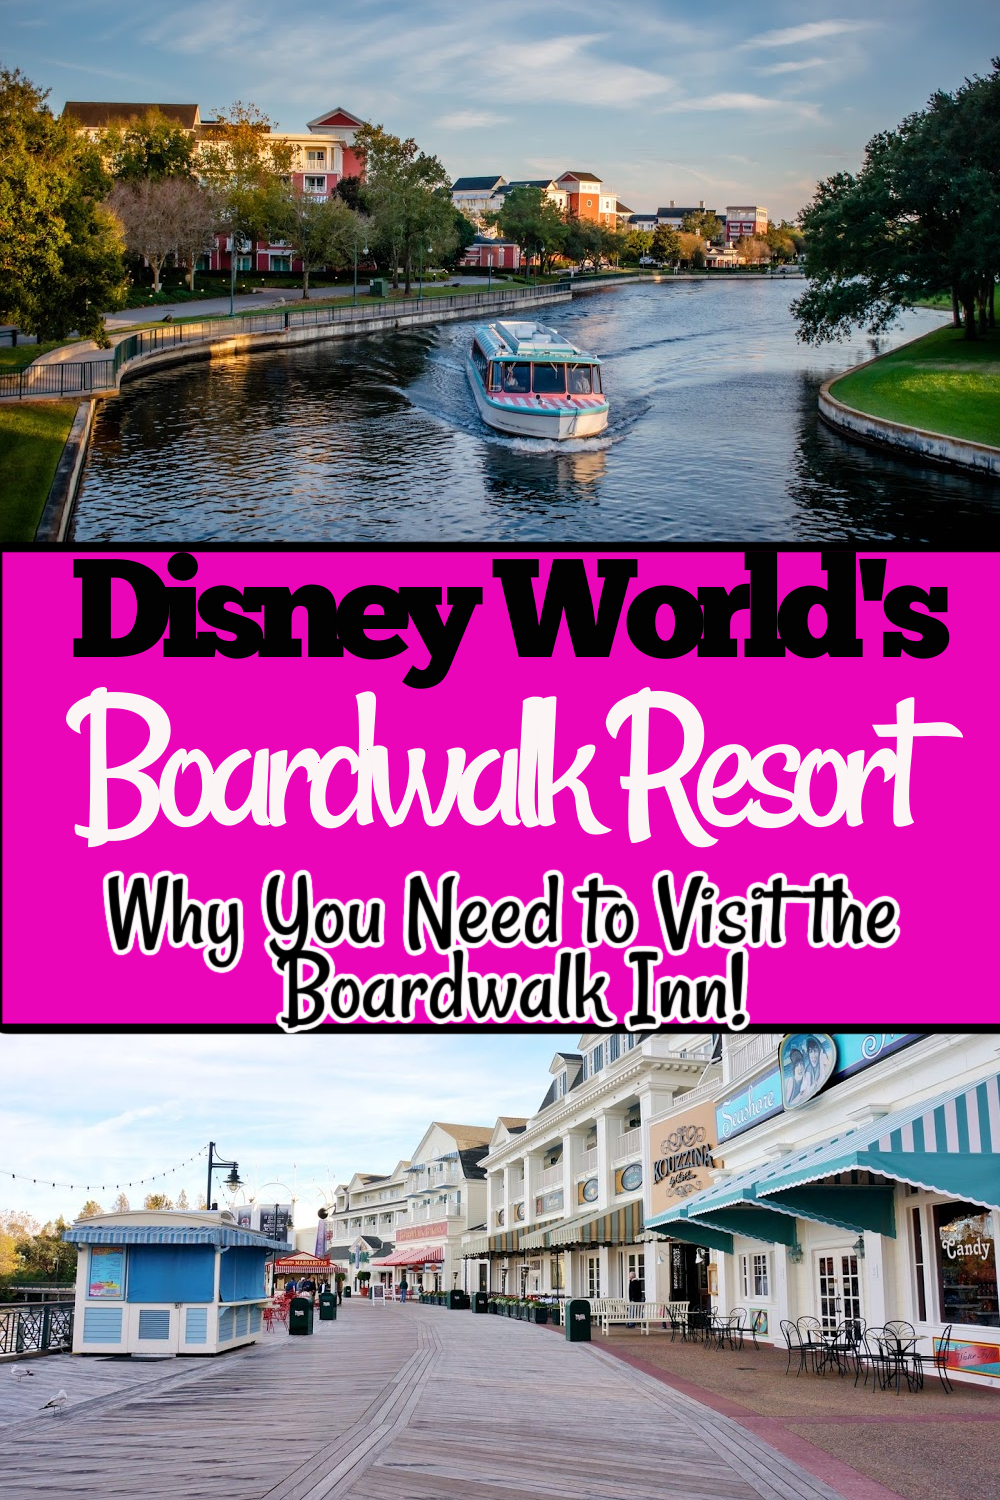 Boardwalk Resort